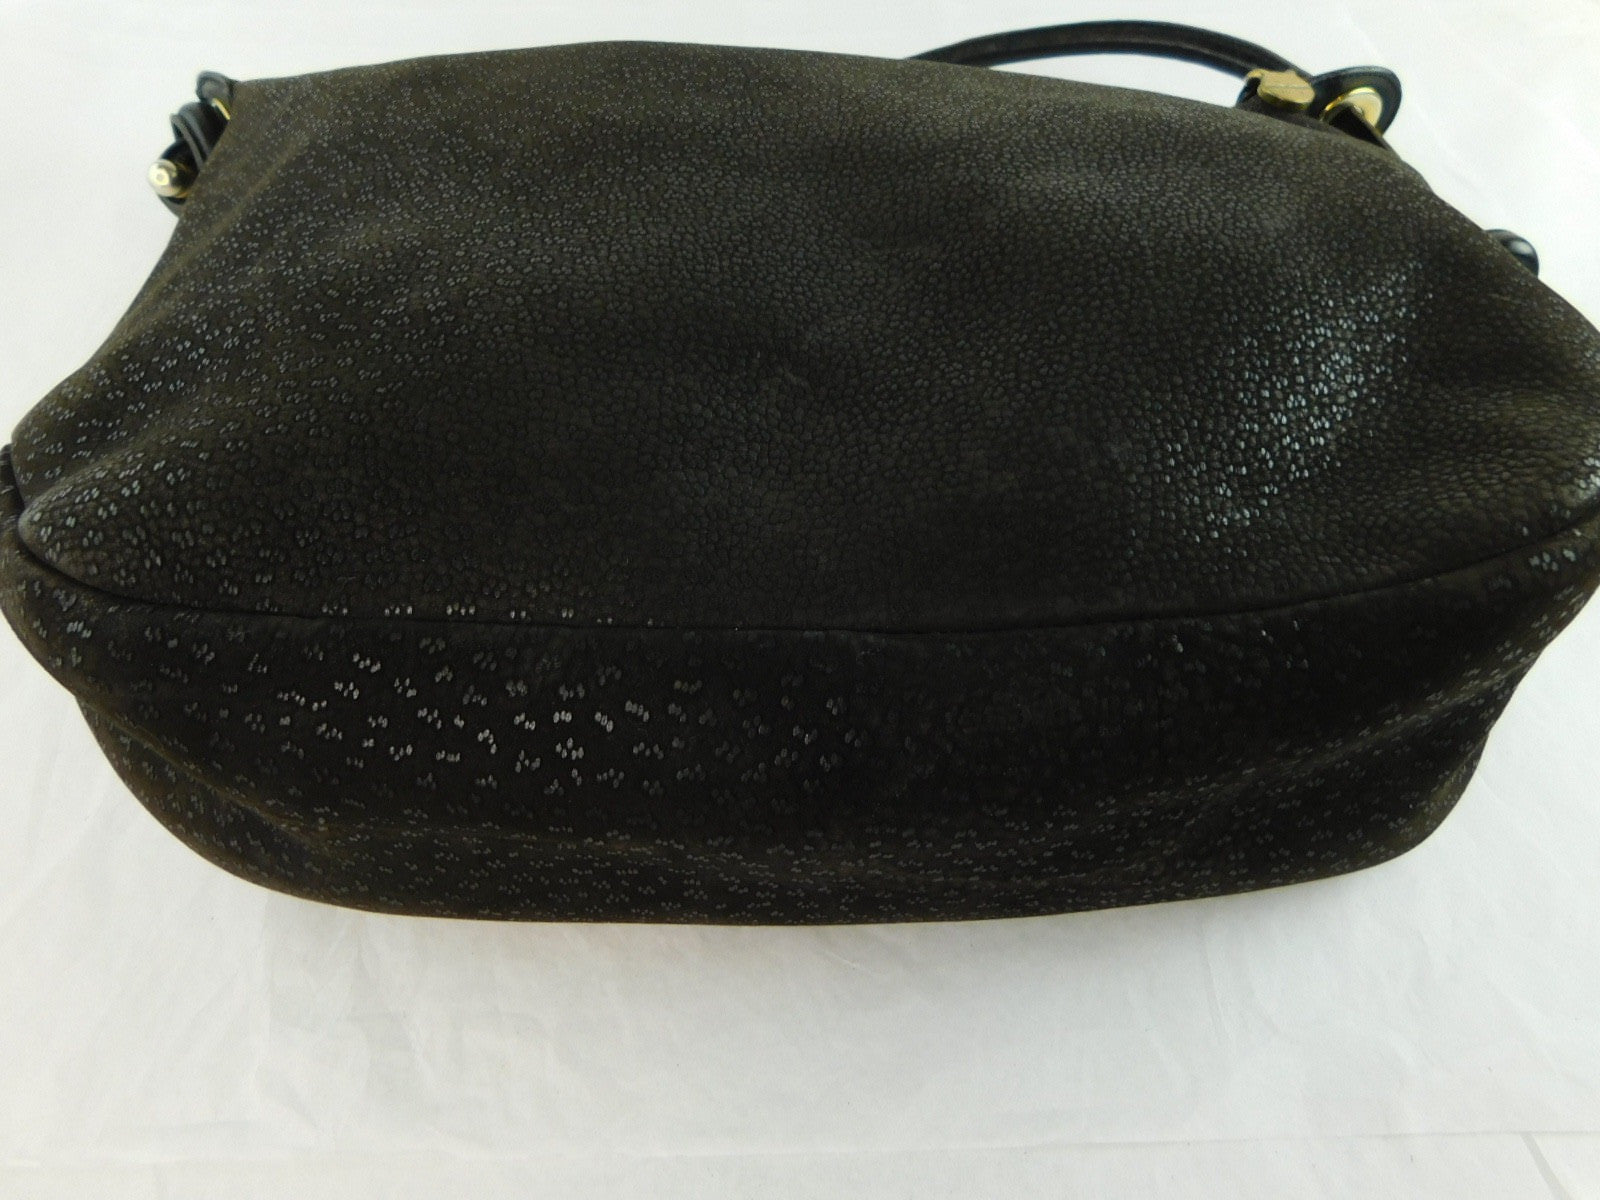 Furla Vintage Large Black Textured Leather Shoulder Handbag